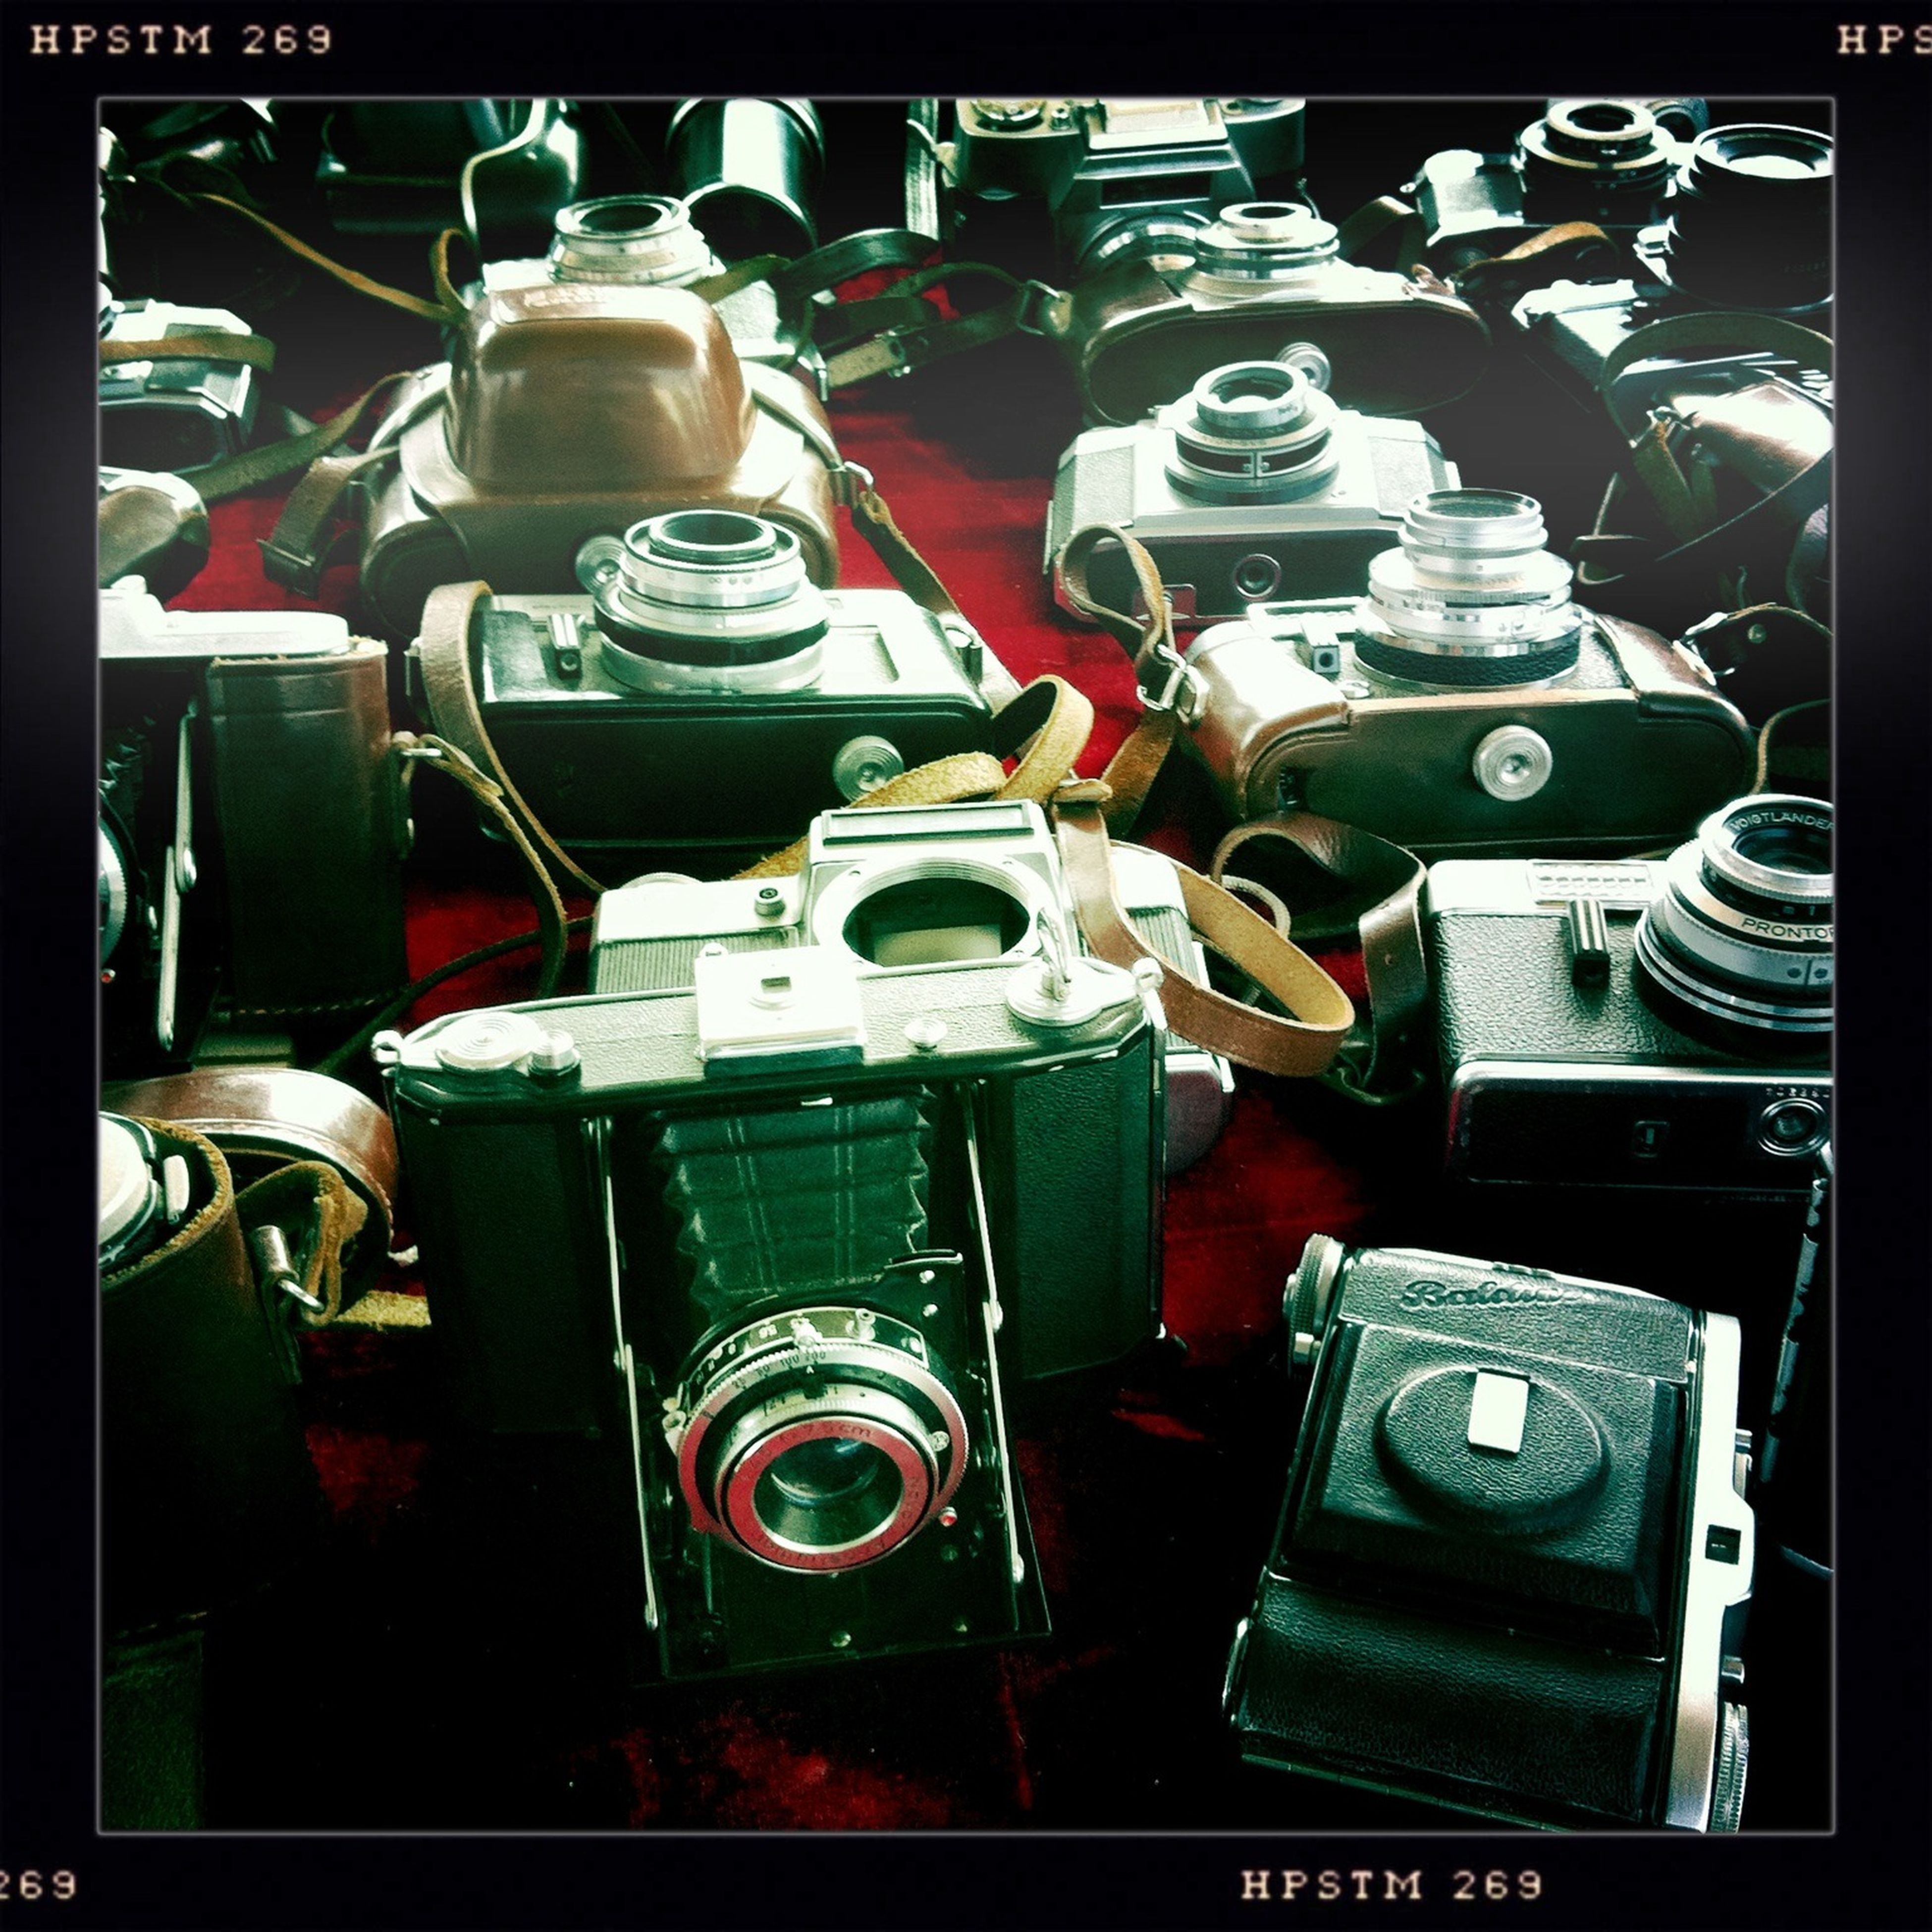 transfer print, indoors, auto post production filter, large group of objects, technology, still life, close-up, variation, abundance, equipment, retro styled, choice, table, metal, high angle view, old-fashioned, arrangement, stack, no people, antique